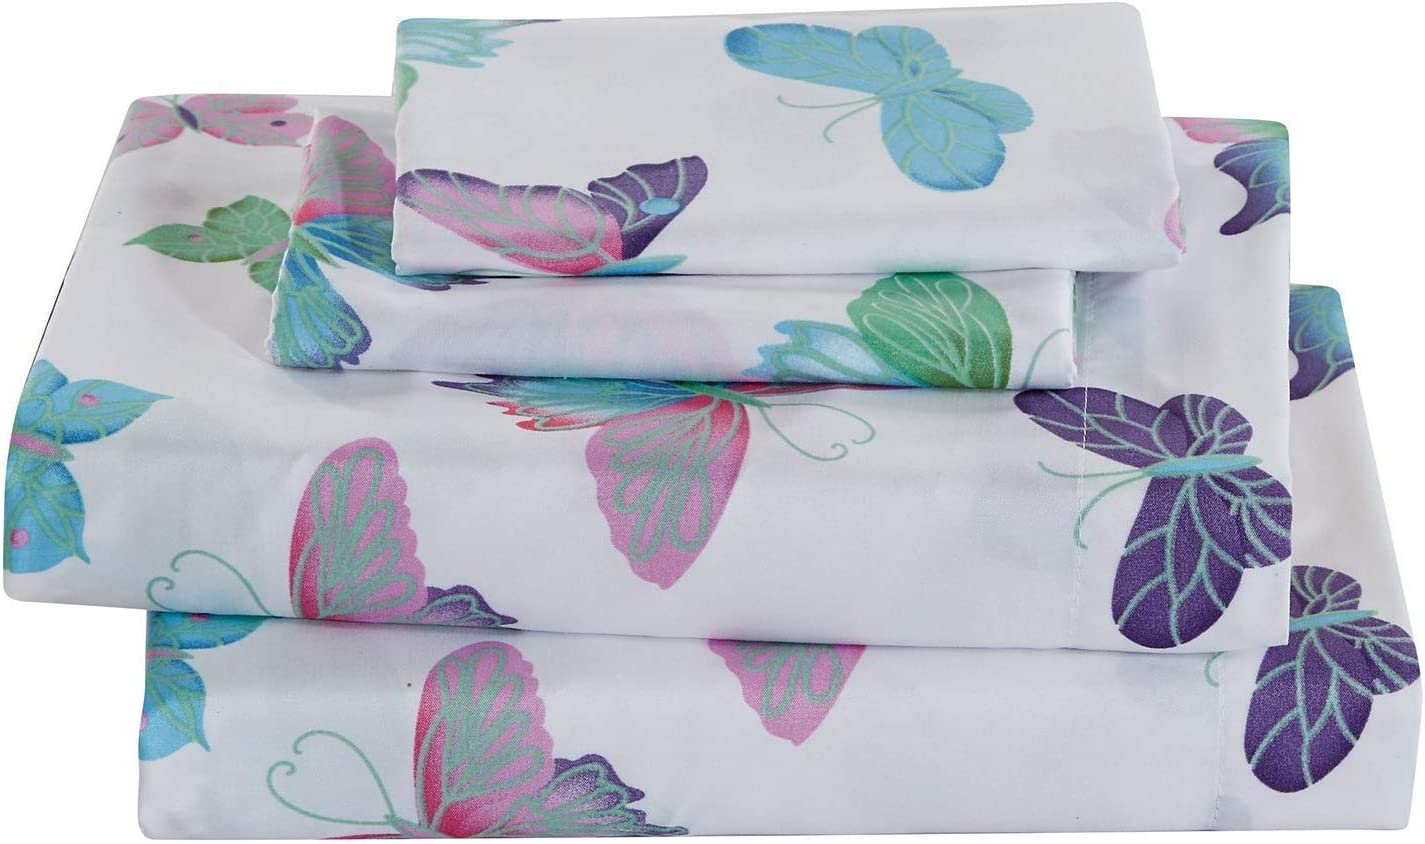 Elegant Home Purple Turquoise White Pink Green Butterflies Design 4 Piece Printed Sheet Set with Pillowcases Flat Fitted Sheet for Girls/Kids/Toddler (Butterfly, Full)